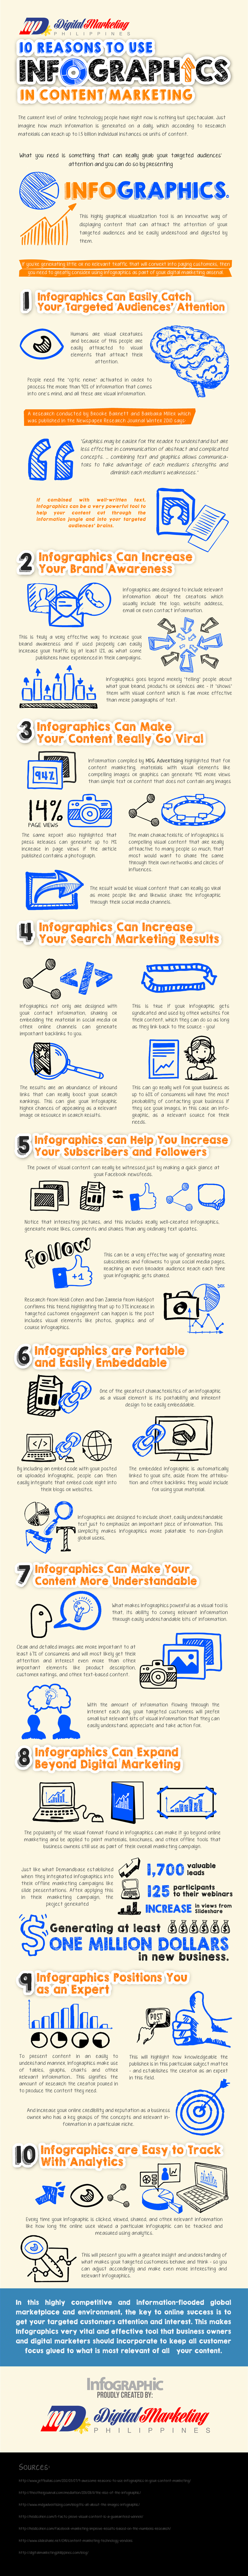 10 Reasons to Use Infographics in Content Marketing